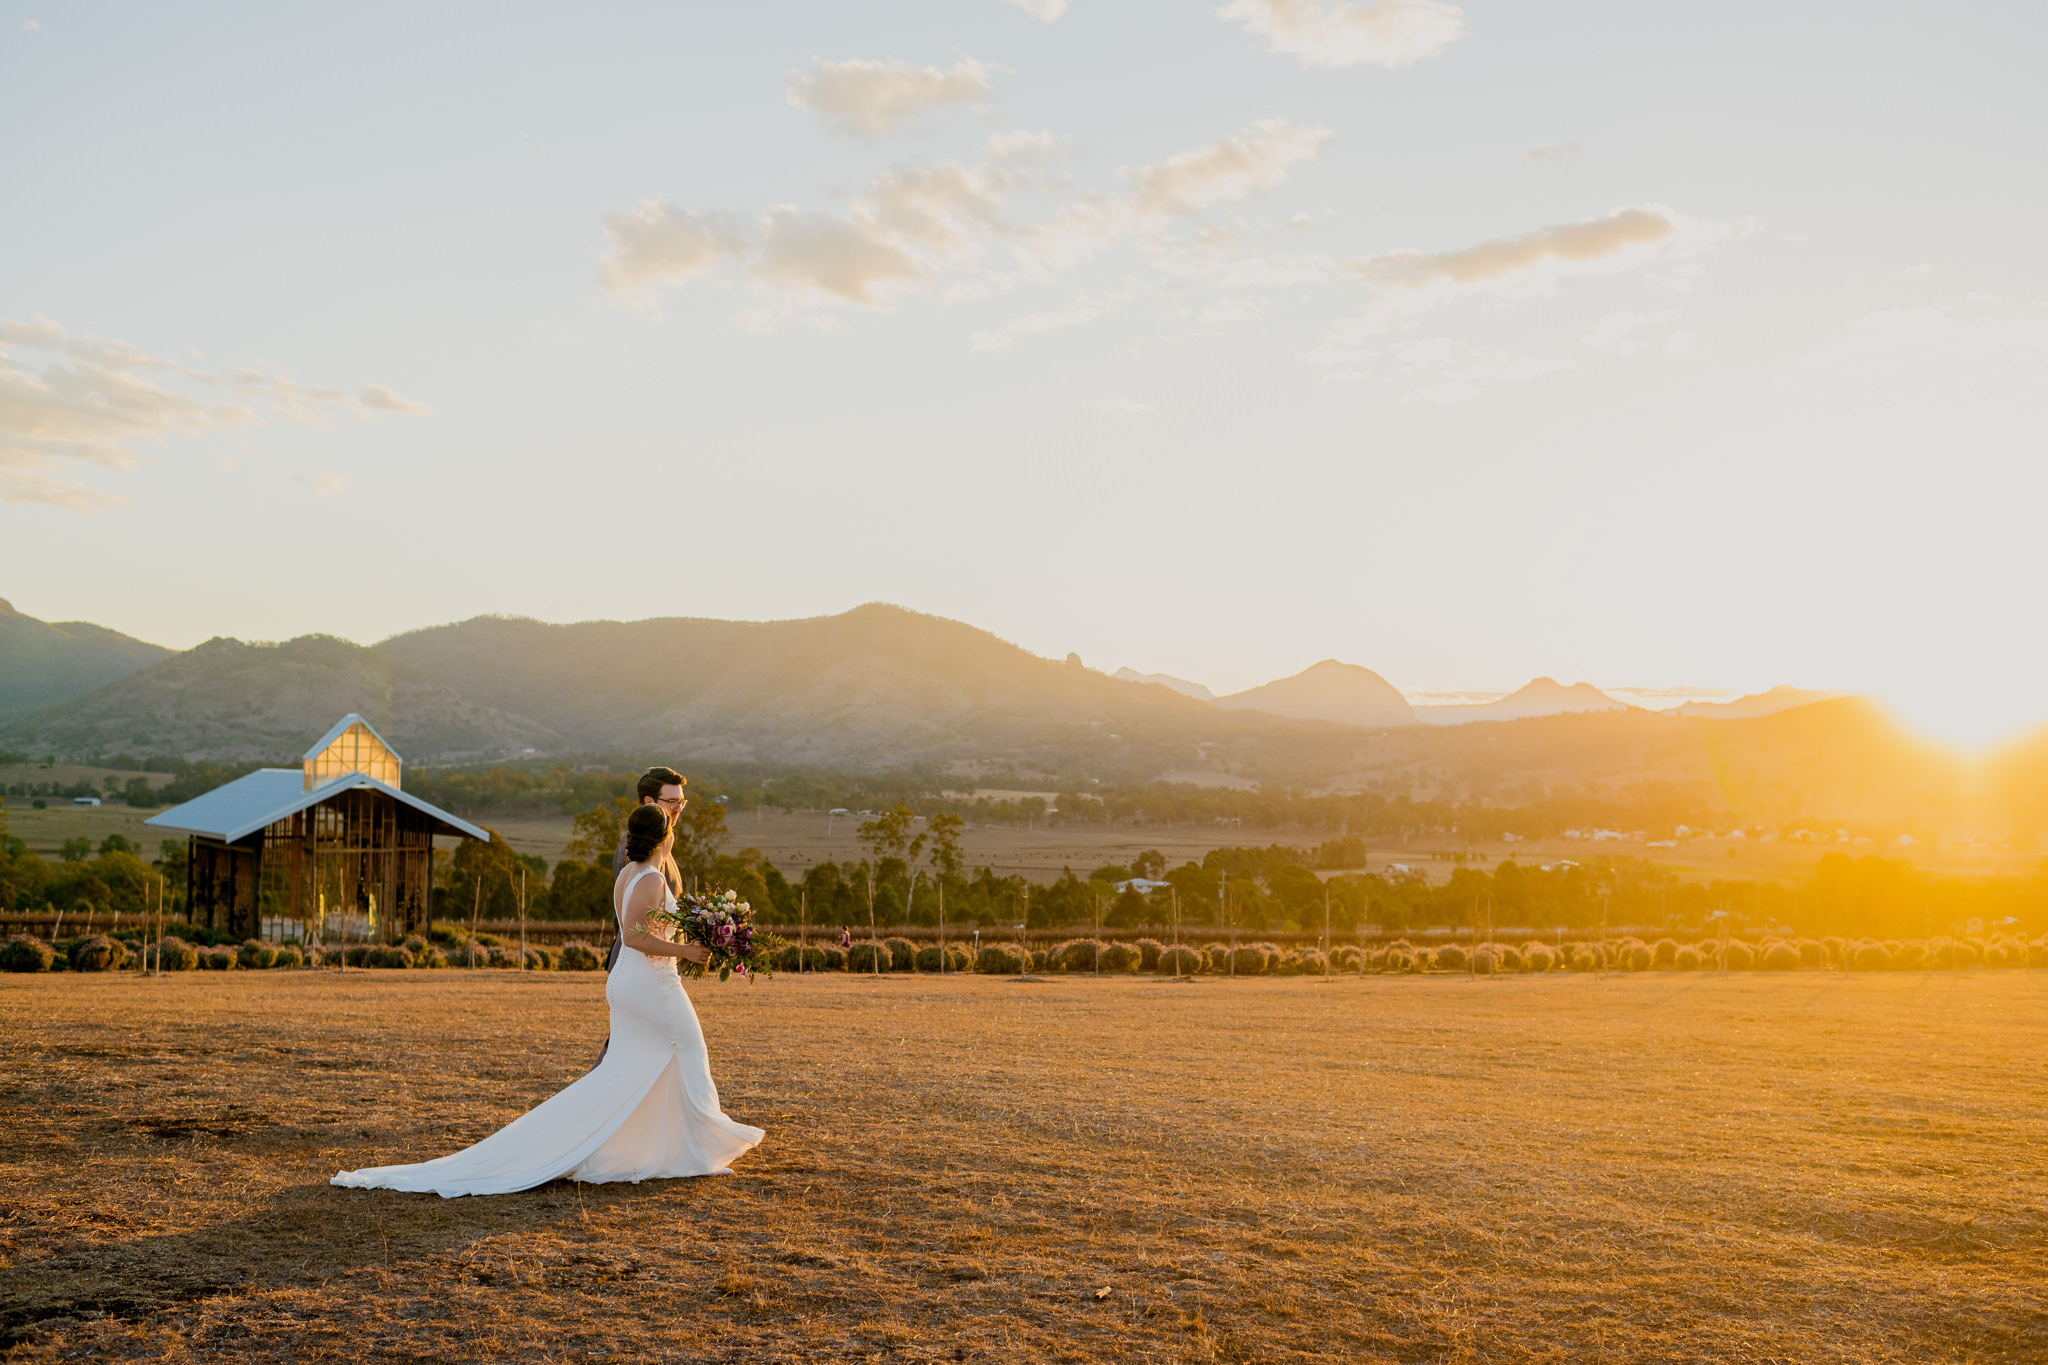 Bride and groom walking along grass with a lavender farm and mountains in the background